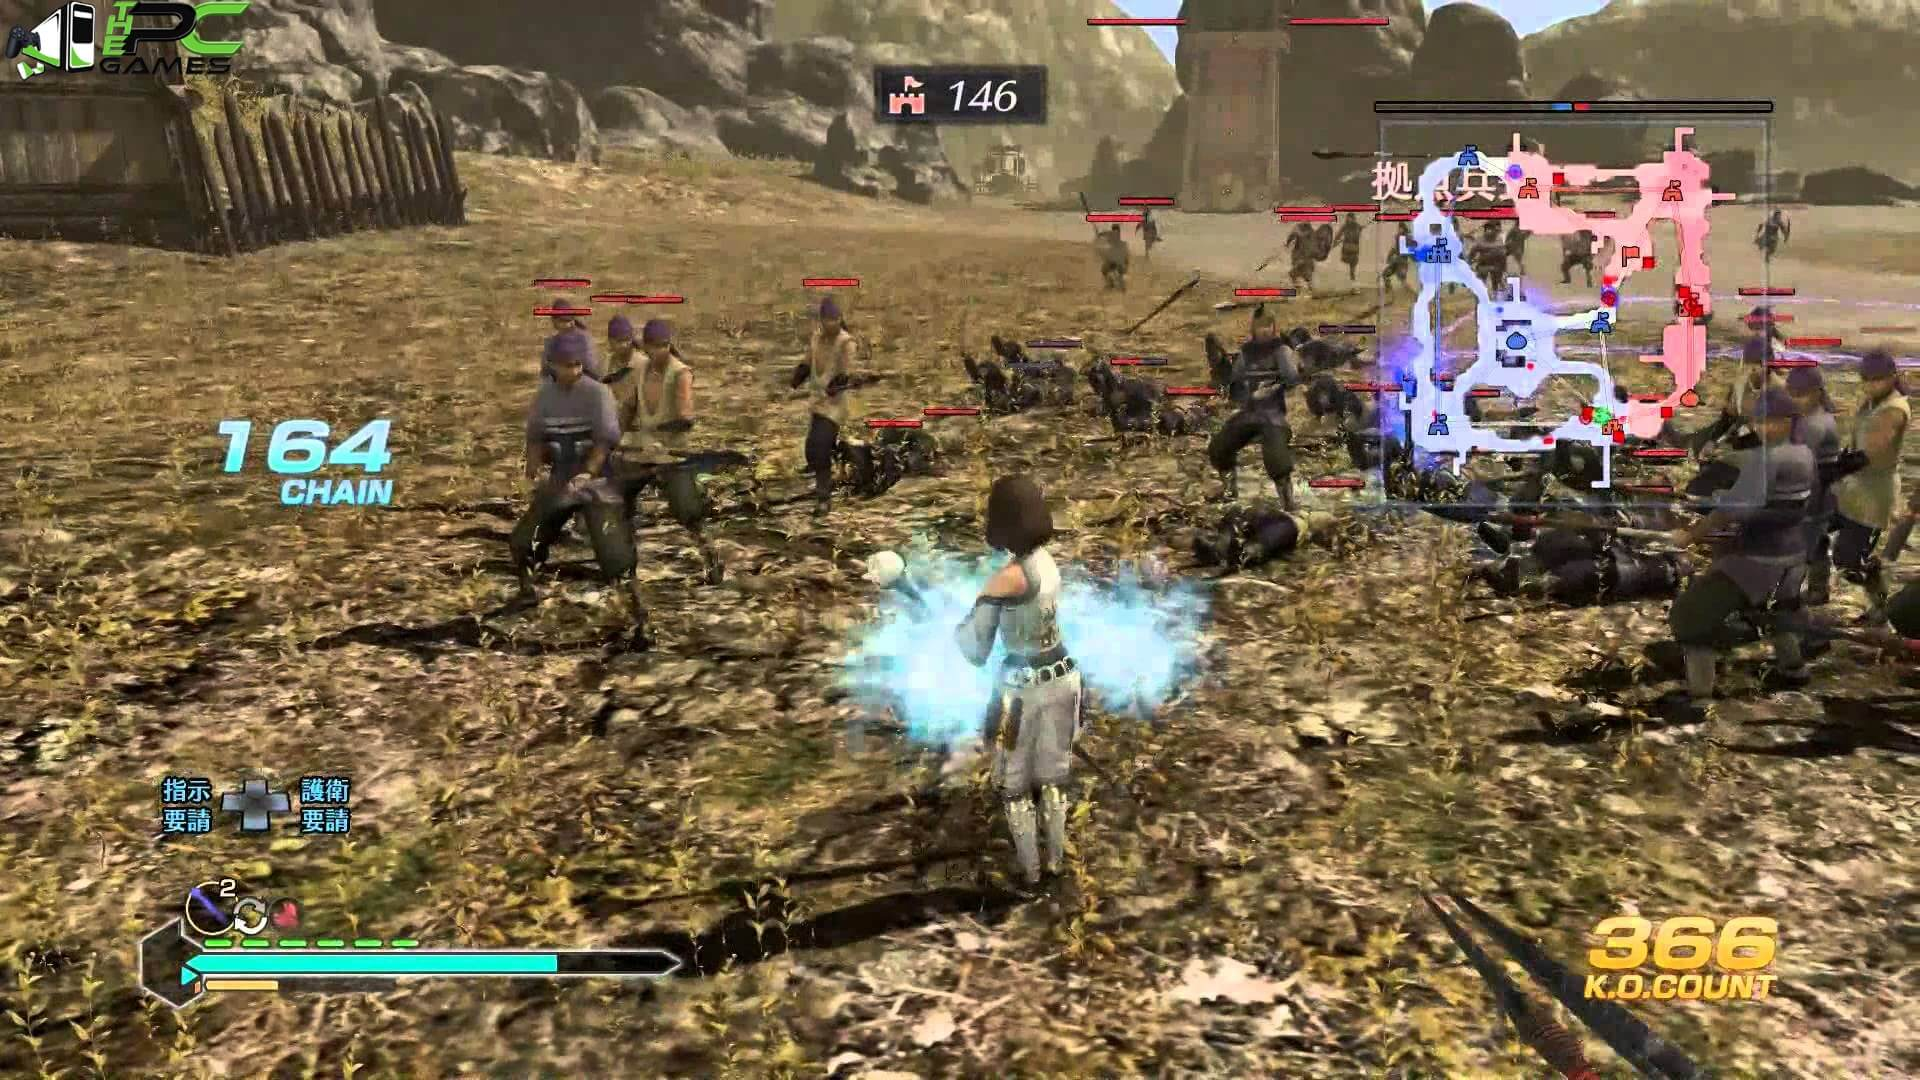 Dynasty warriors pc games